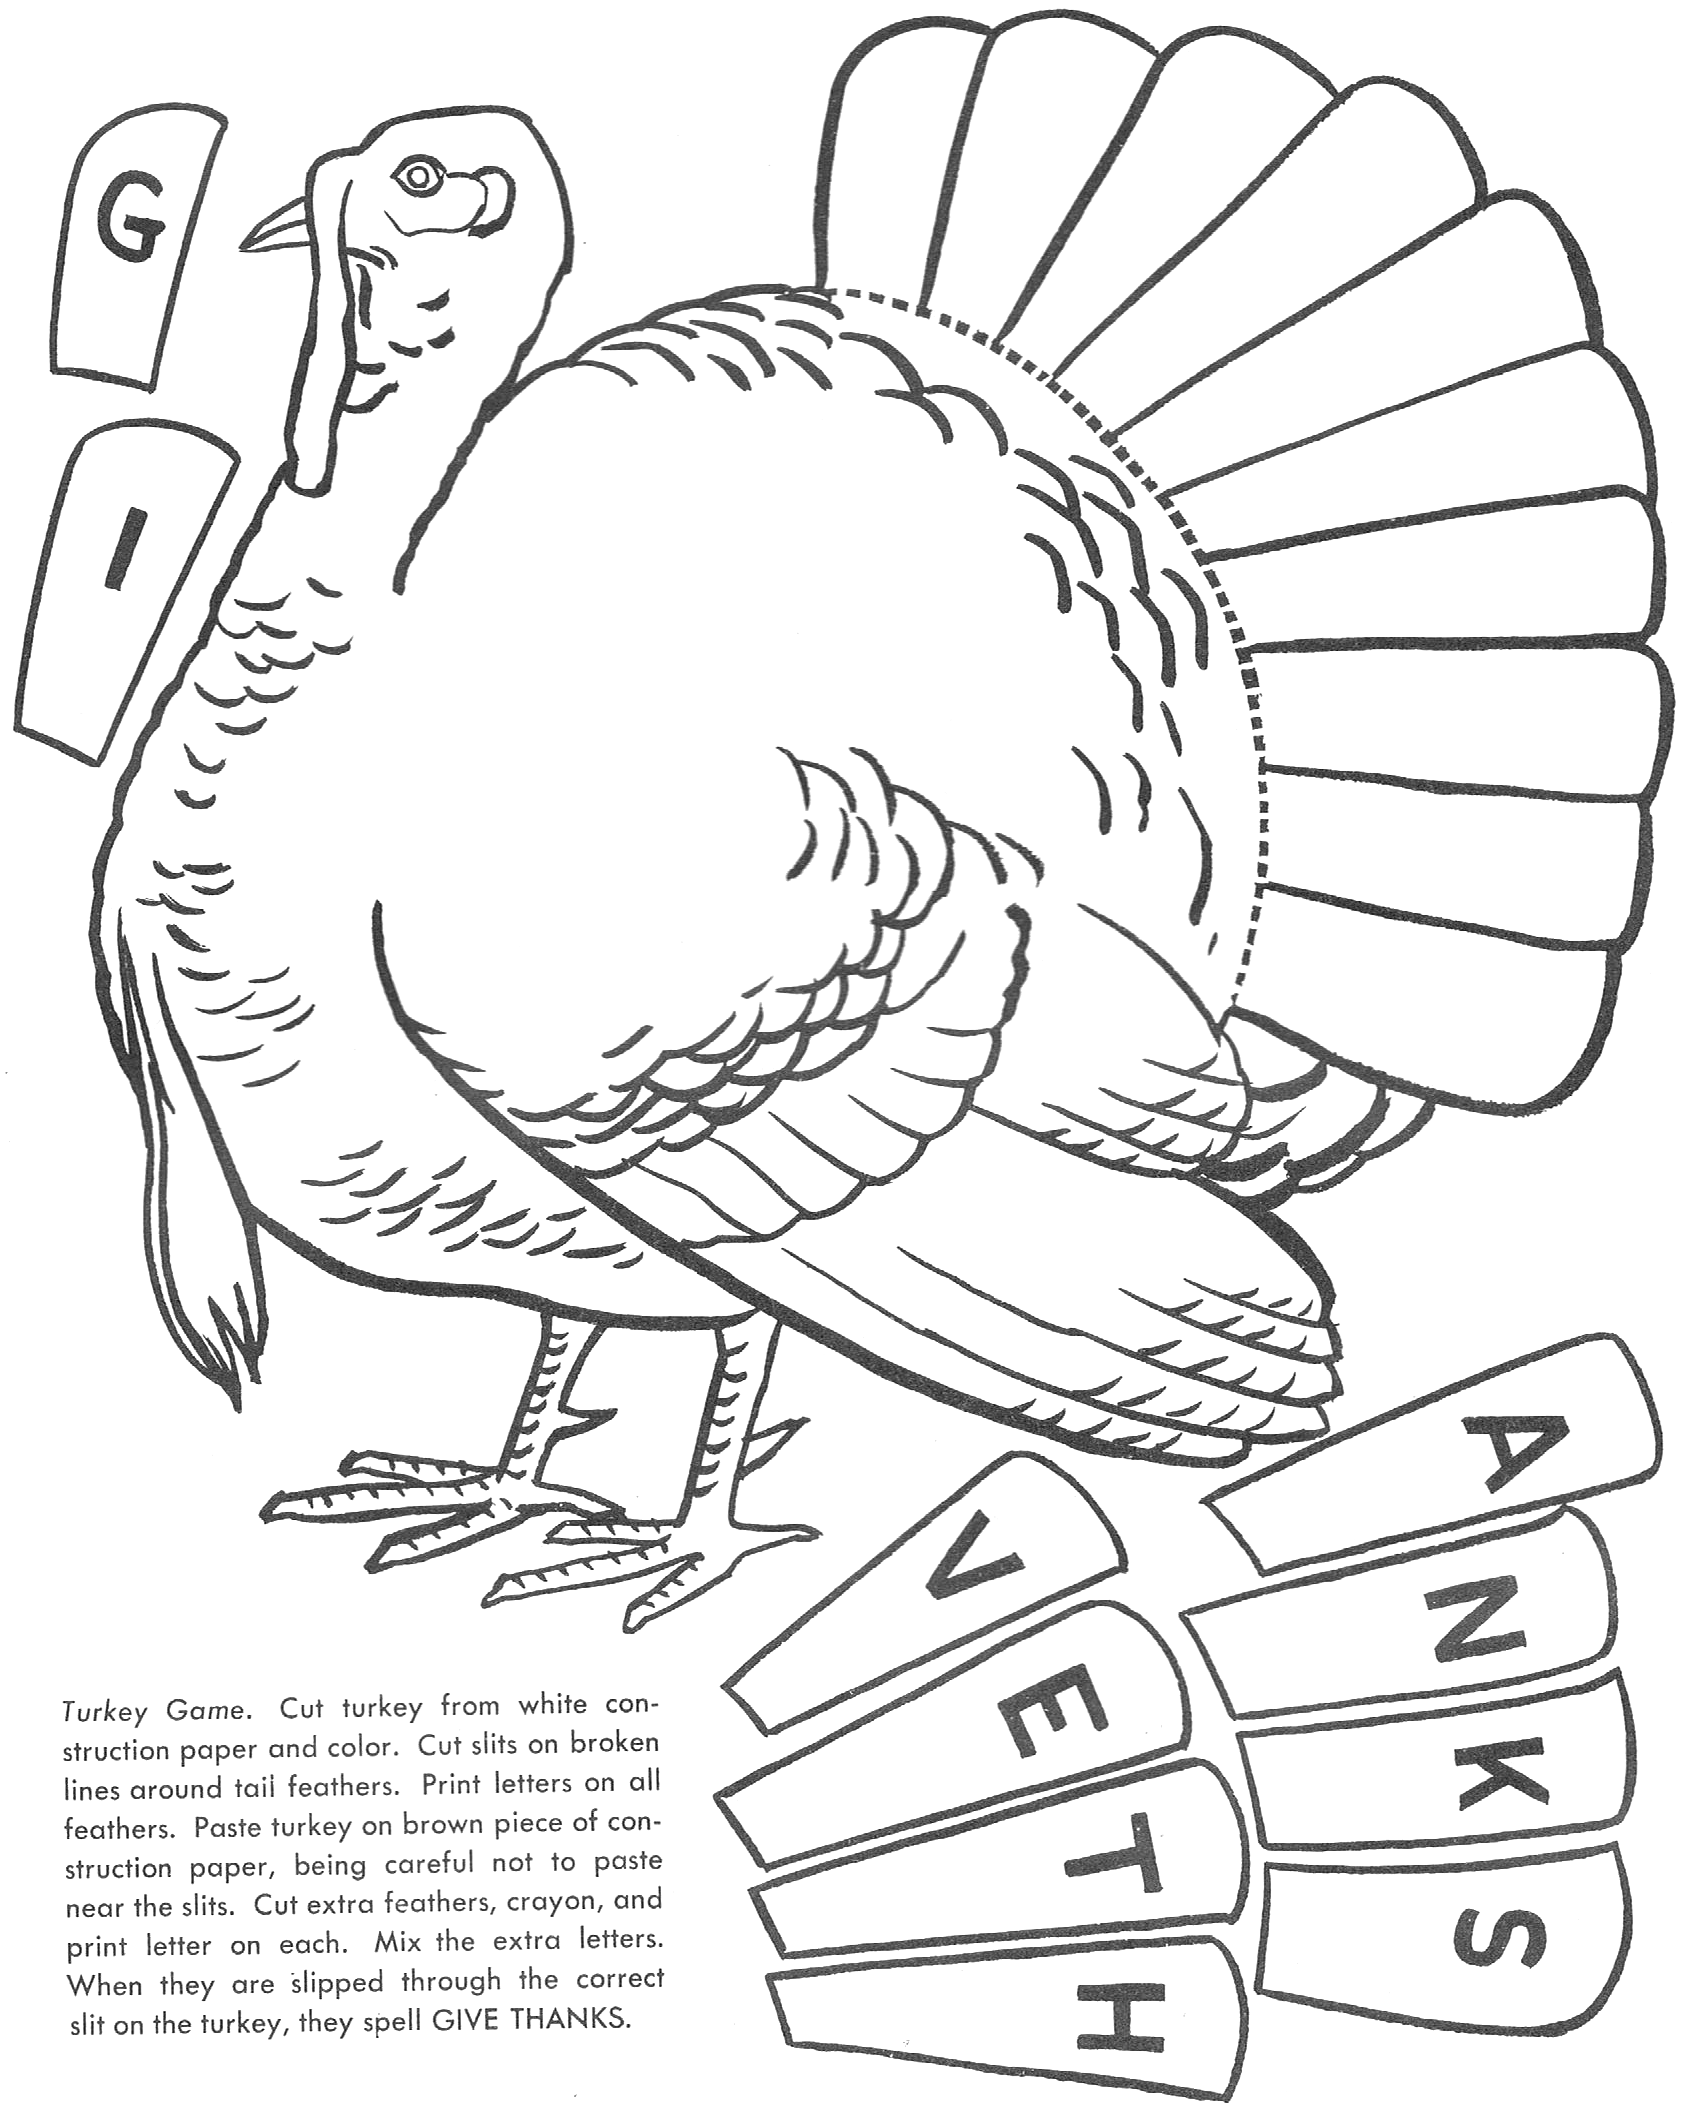 1683x2114 Impressive Turkey Drawing Template Cool Gallery Ideas